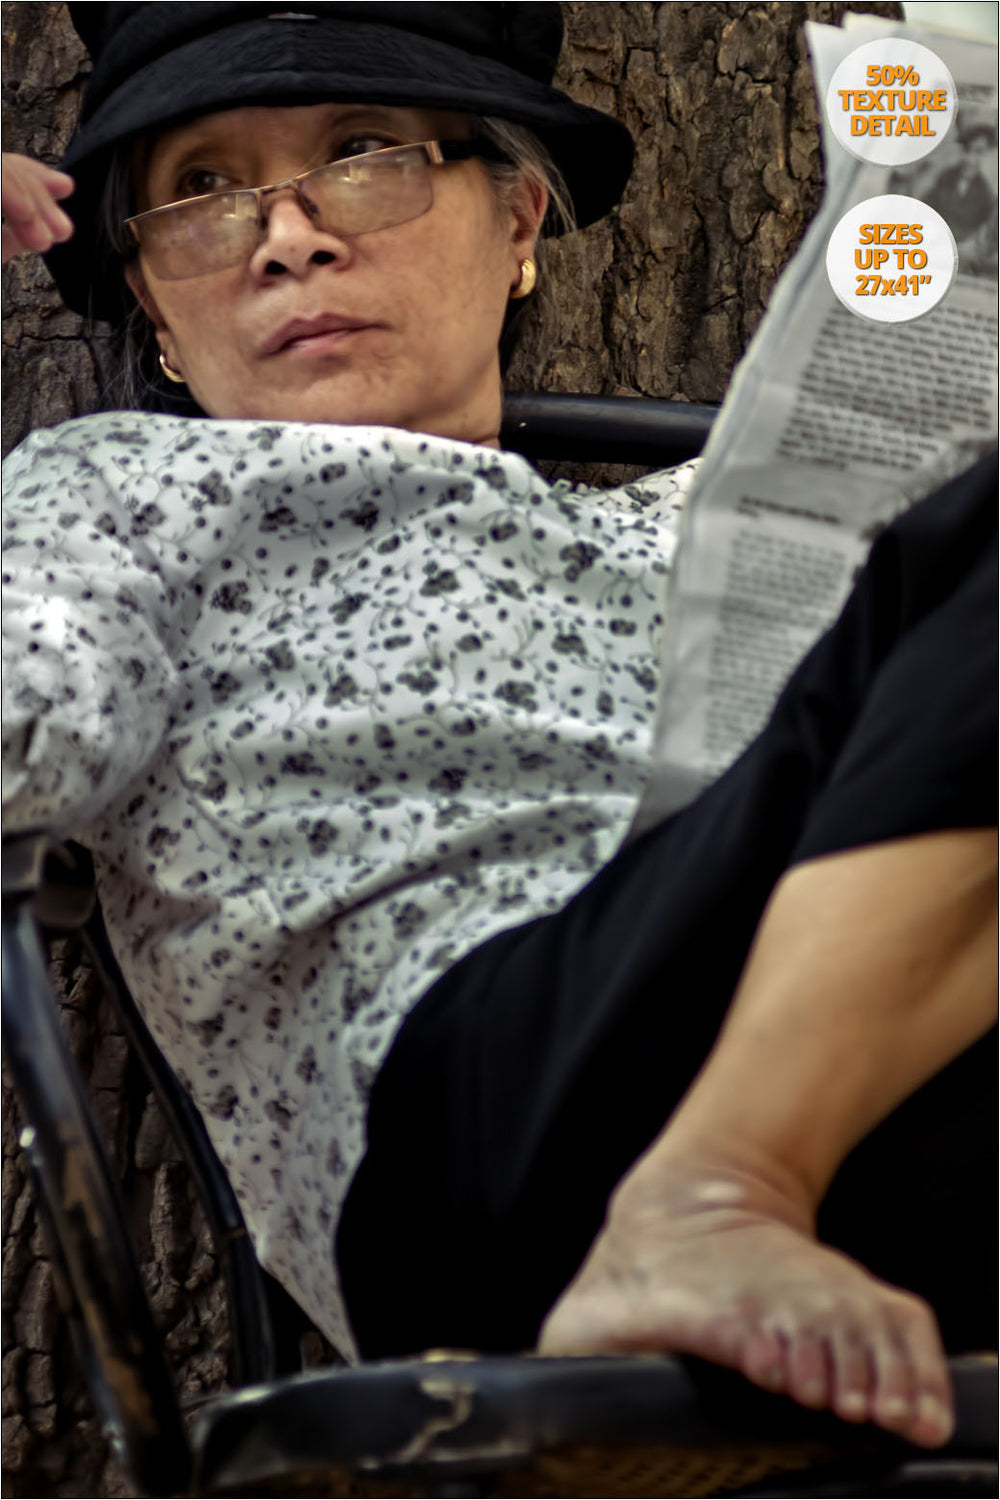 Portrait of woman reading the newspaper, Vietnam. | 50% Magnification Detail.